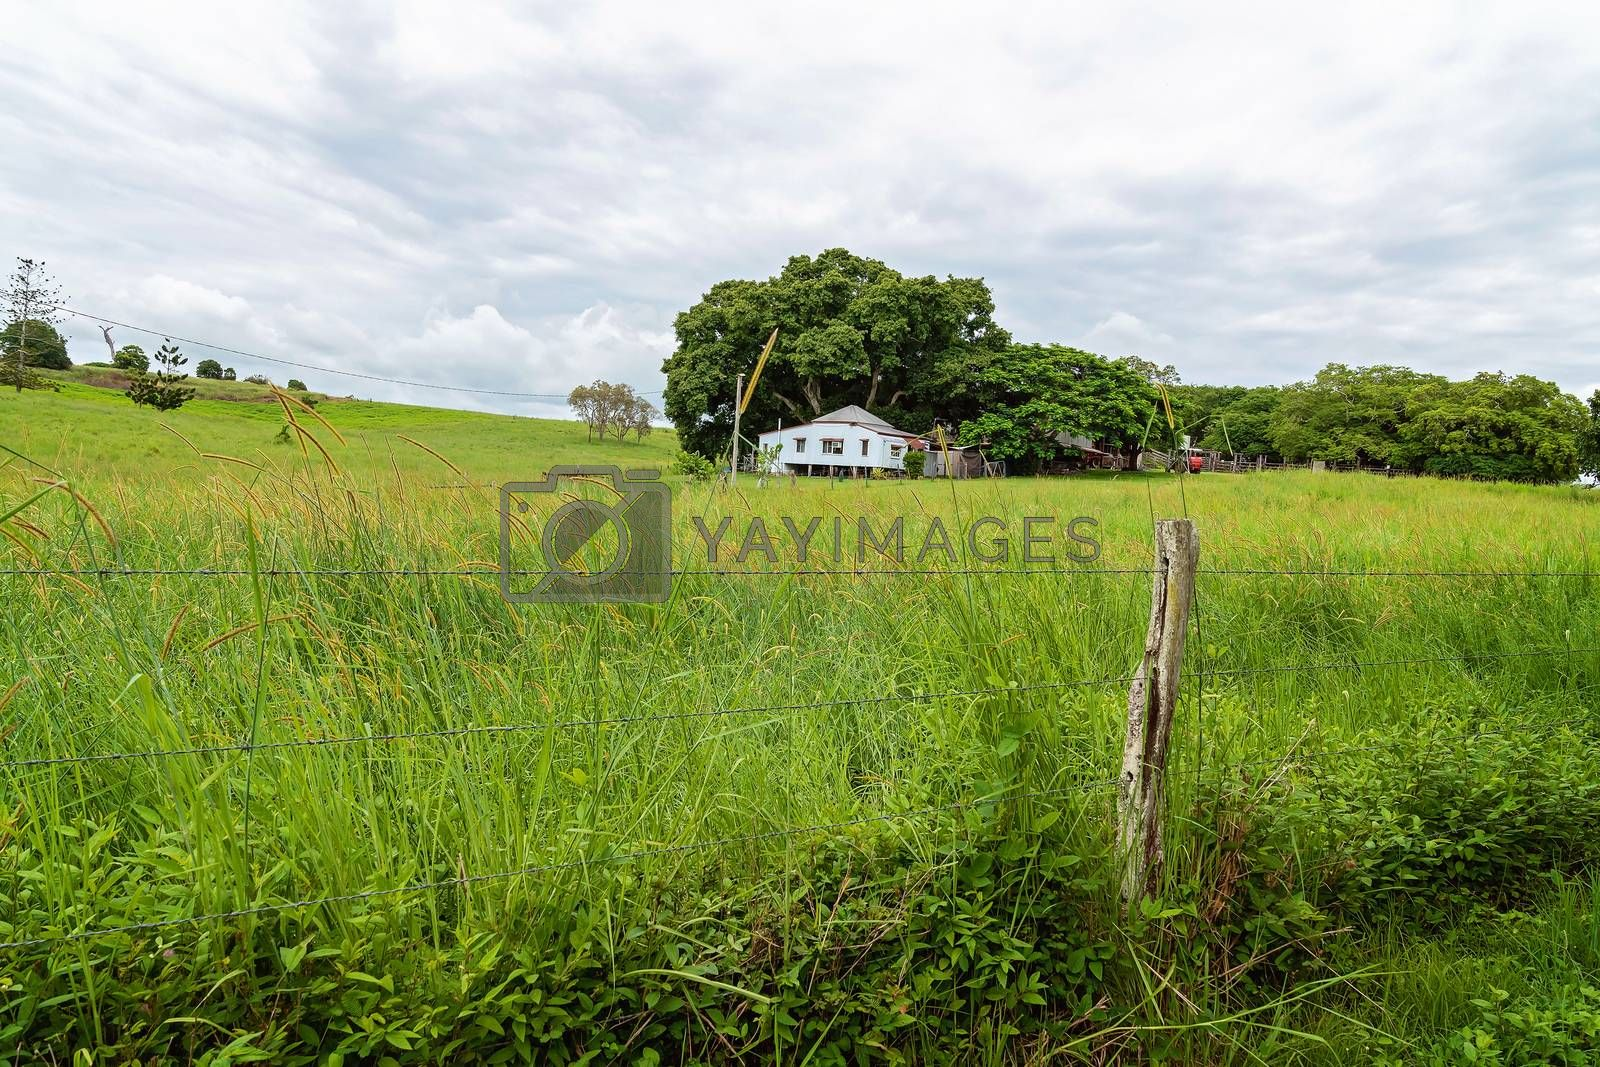 A small old country home in a lush green landscape with grass growing wild after recent rains